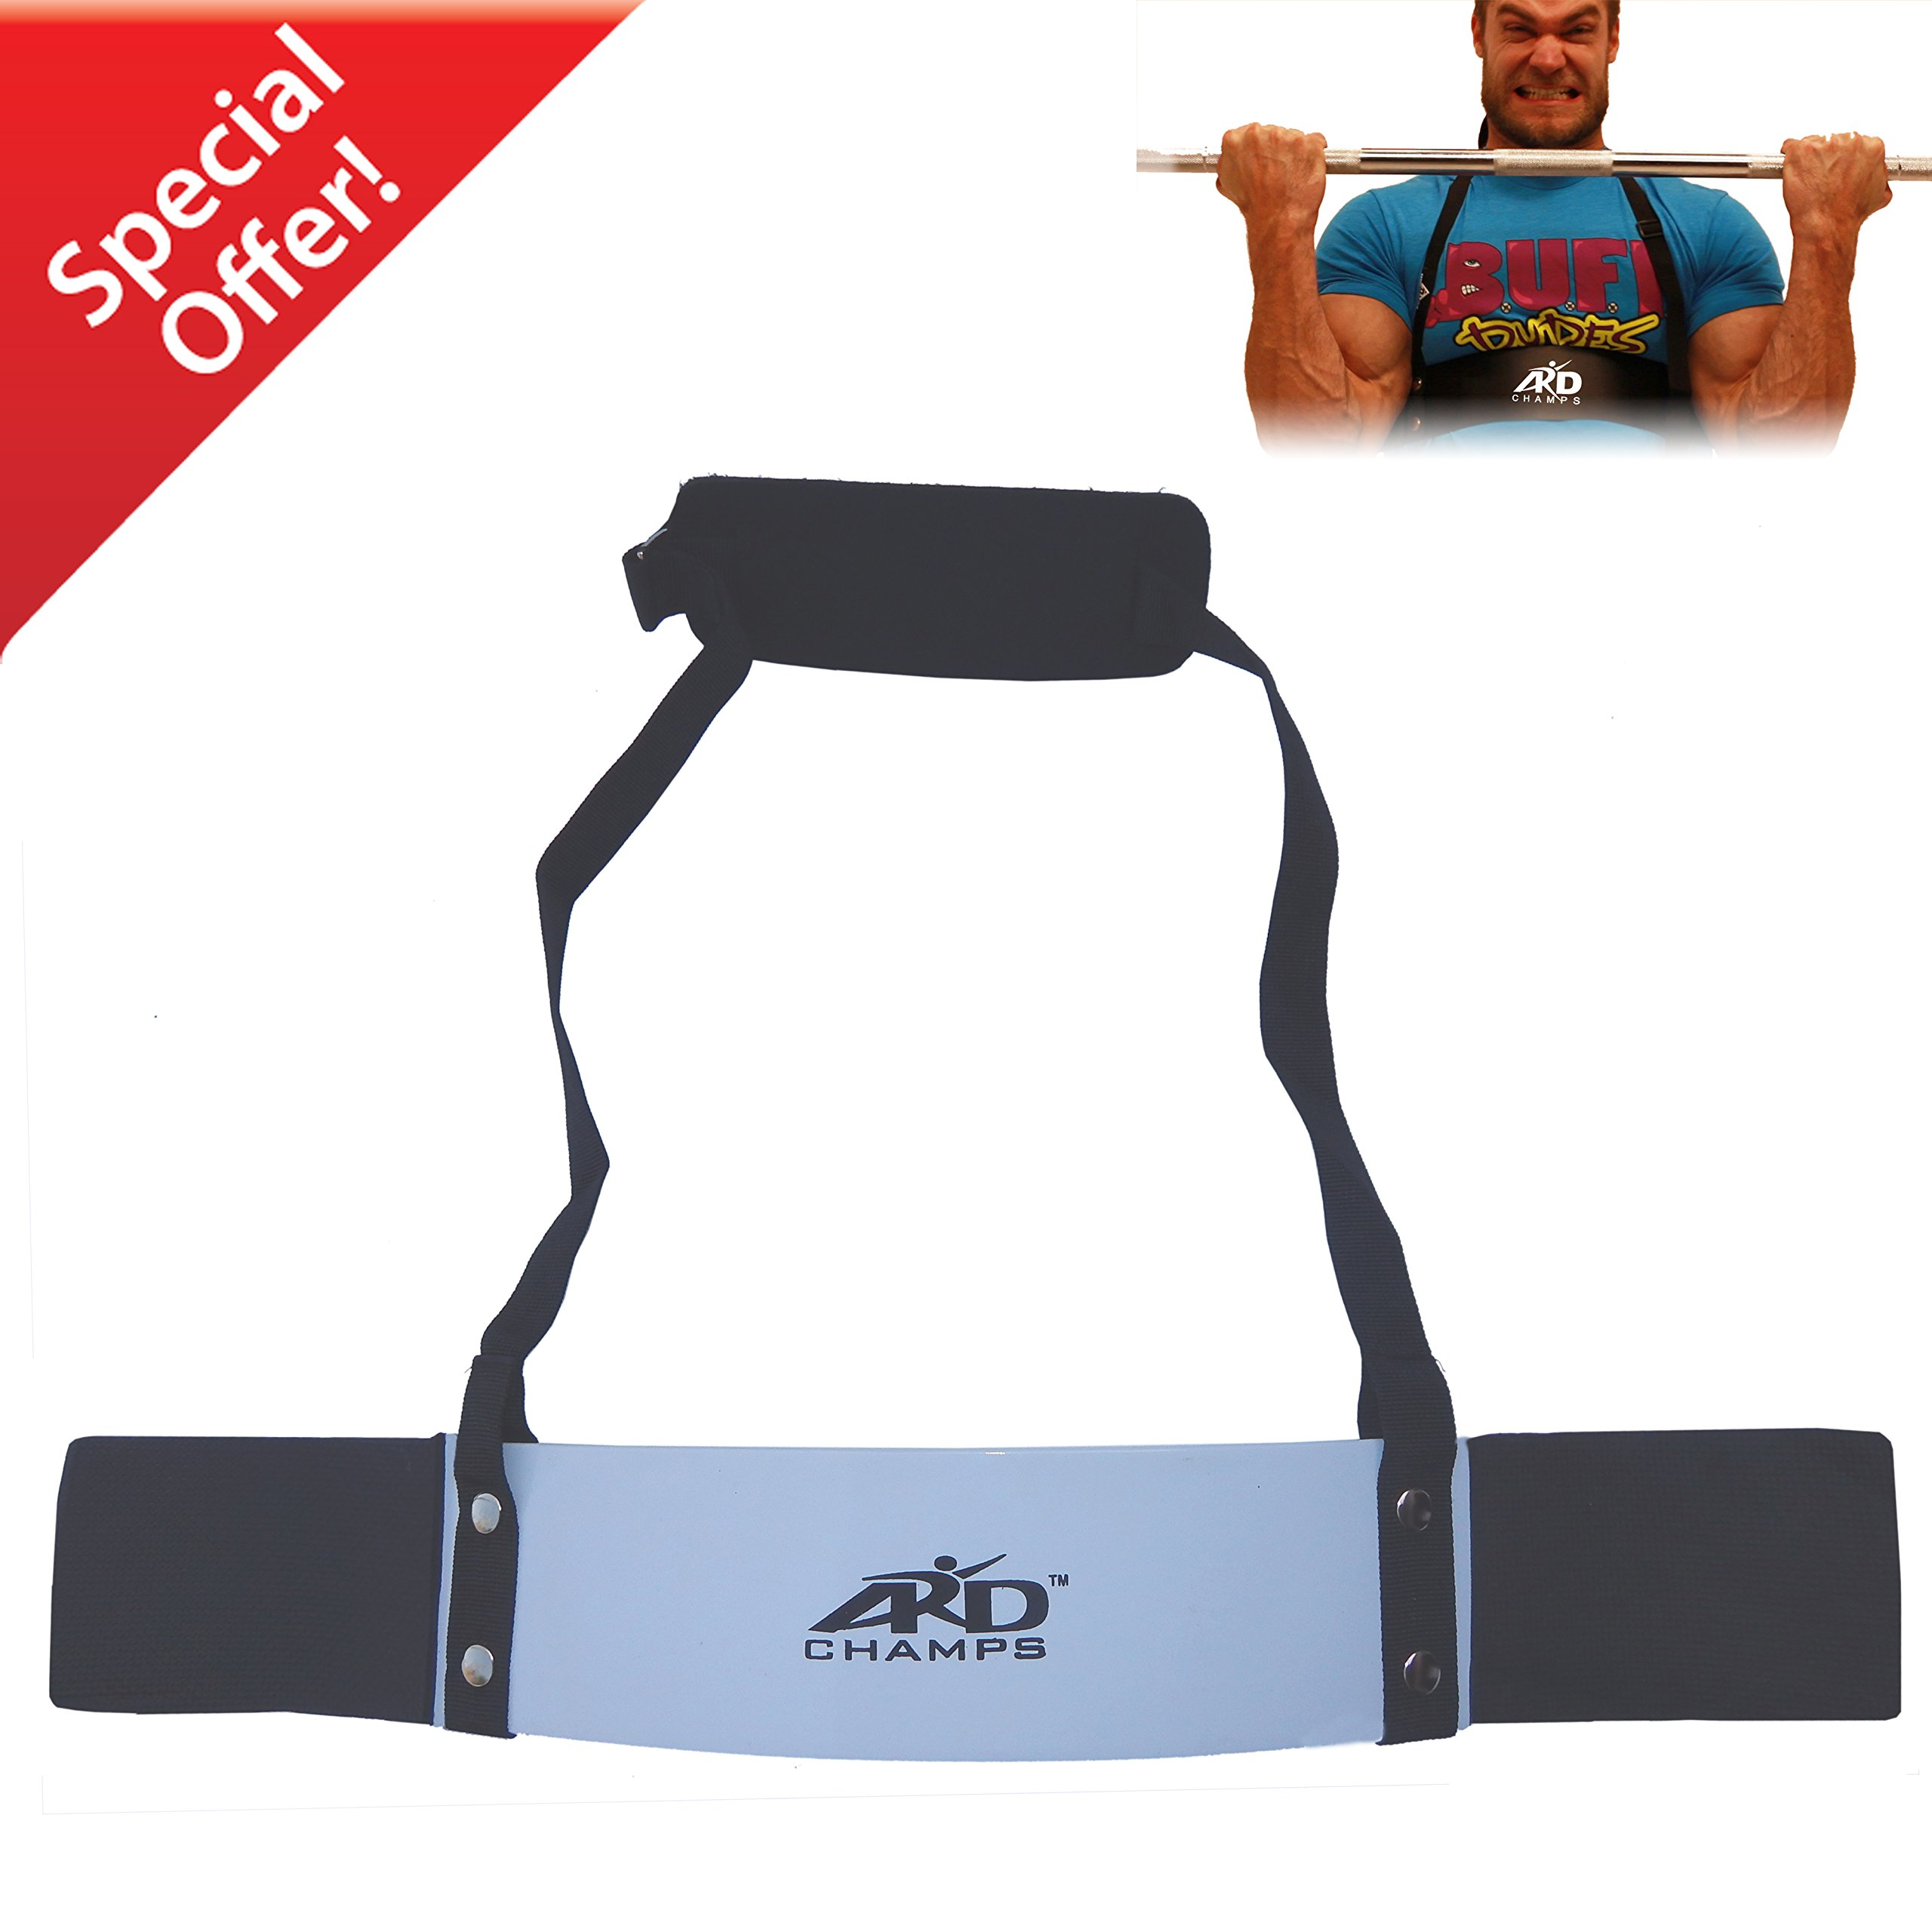 ARD-Champs Heavy Duty Arm Blaster Body Building Bomber Bicep Curl Triceps White New